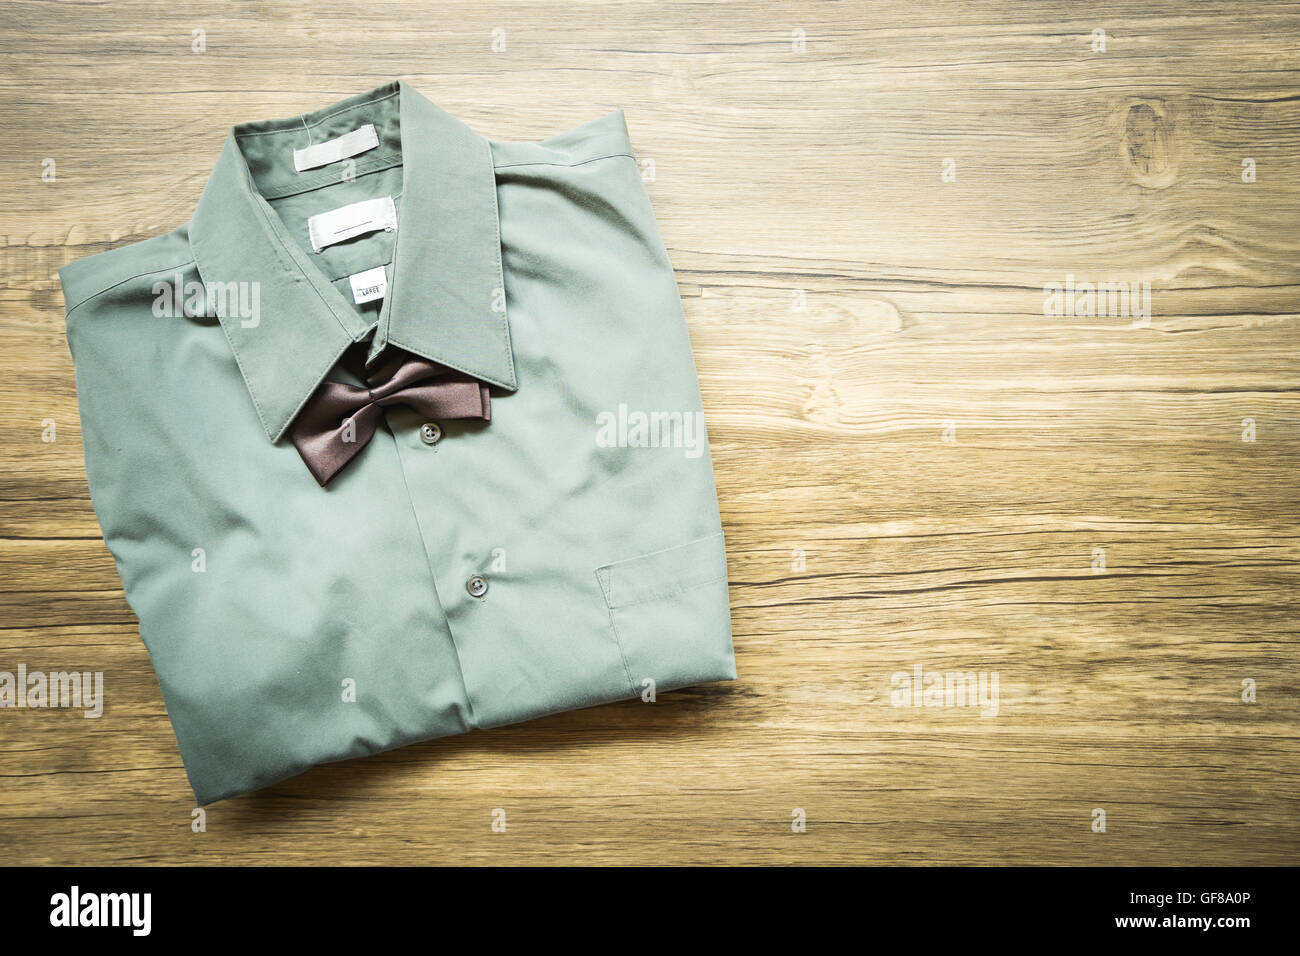 Top view Men's outfits with green shirt and tie on old wood table Stock Photo